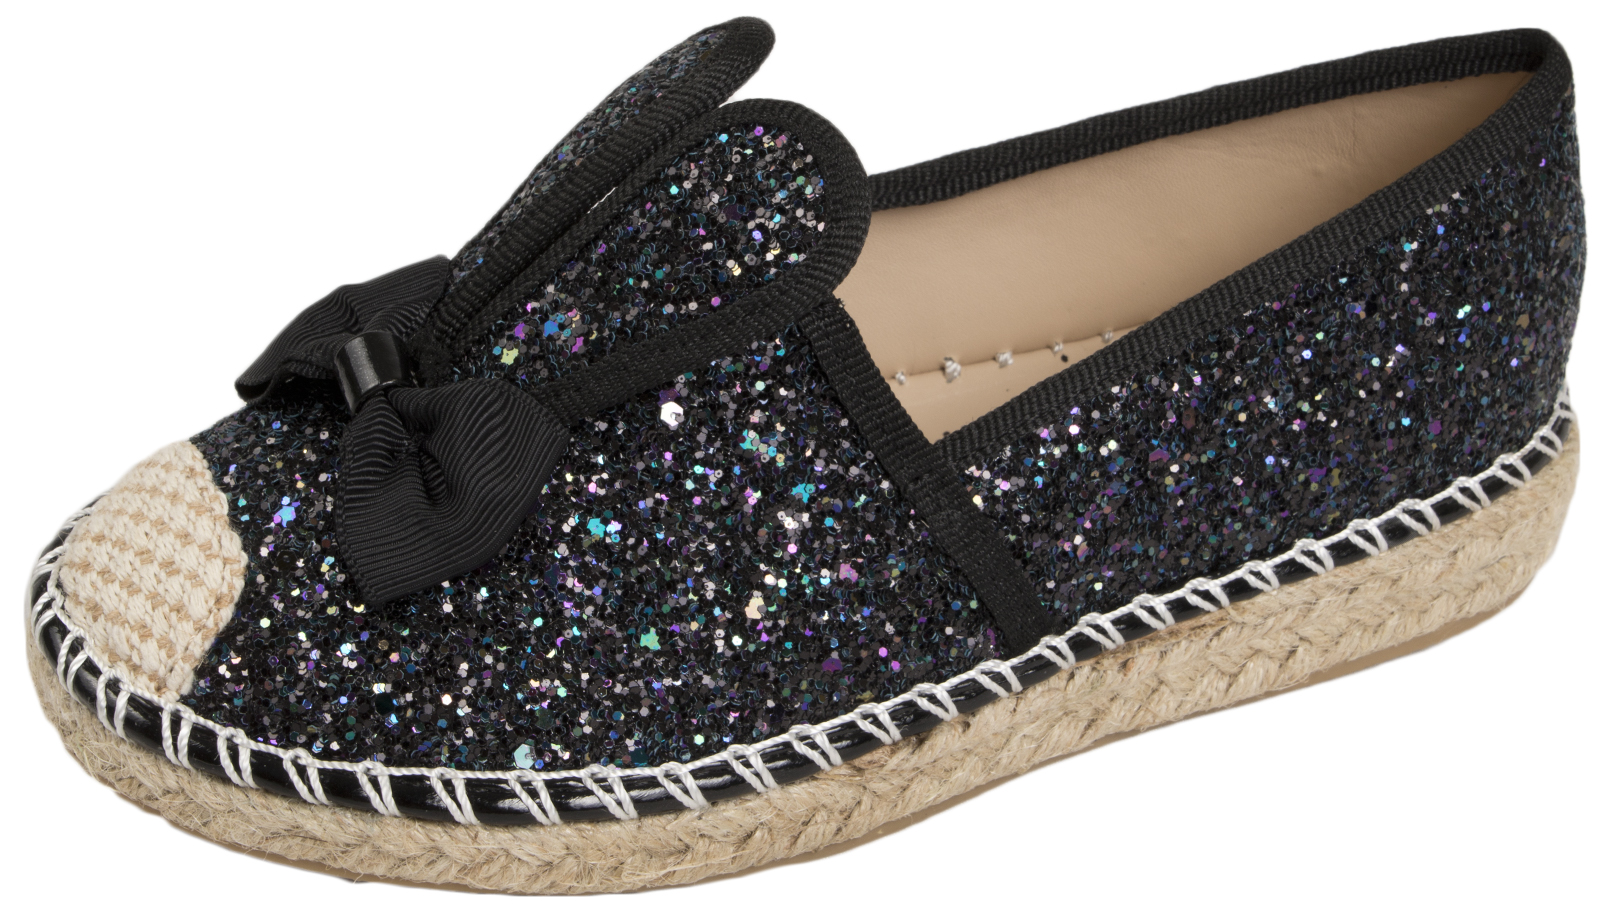 Girls Glitter Shoes 3D Bunny Ears Slip On Pumps Casual Summer Trainers Kids Size